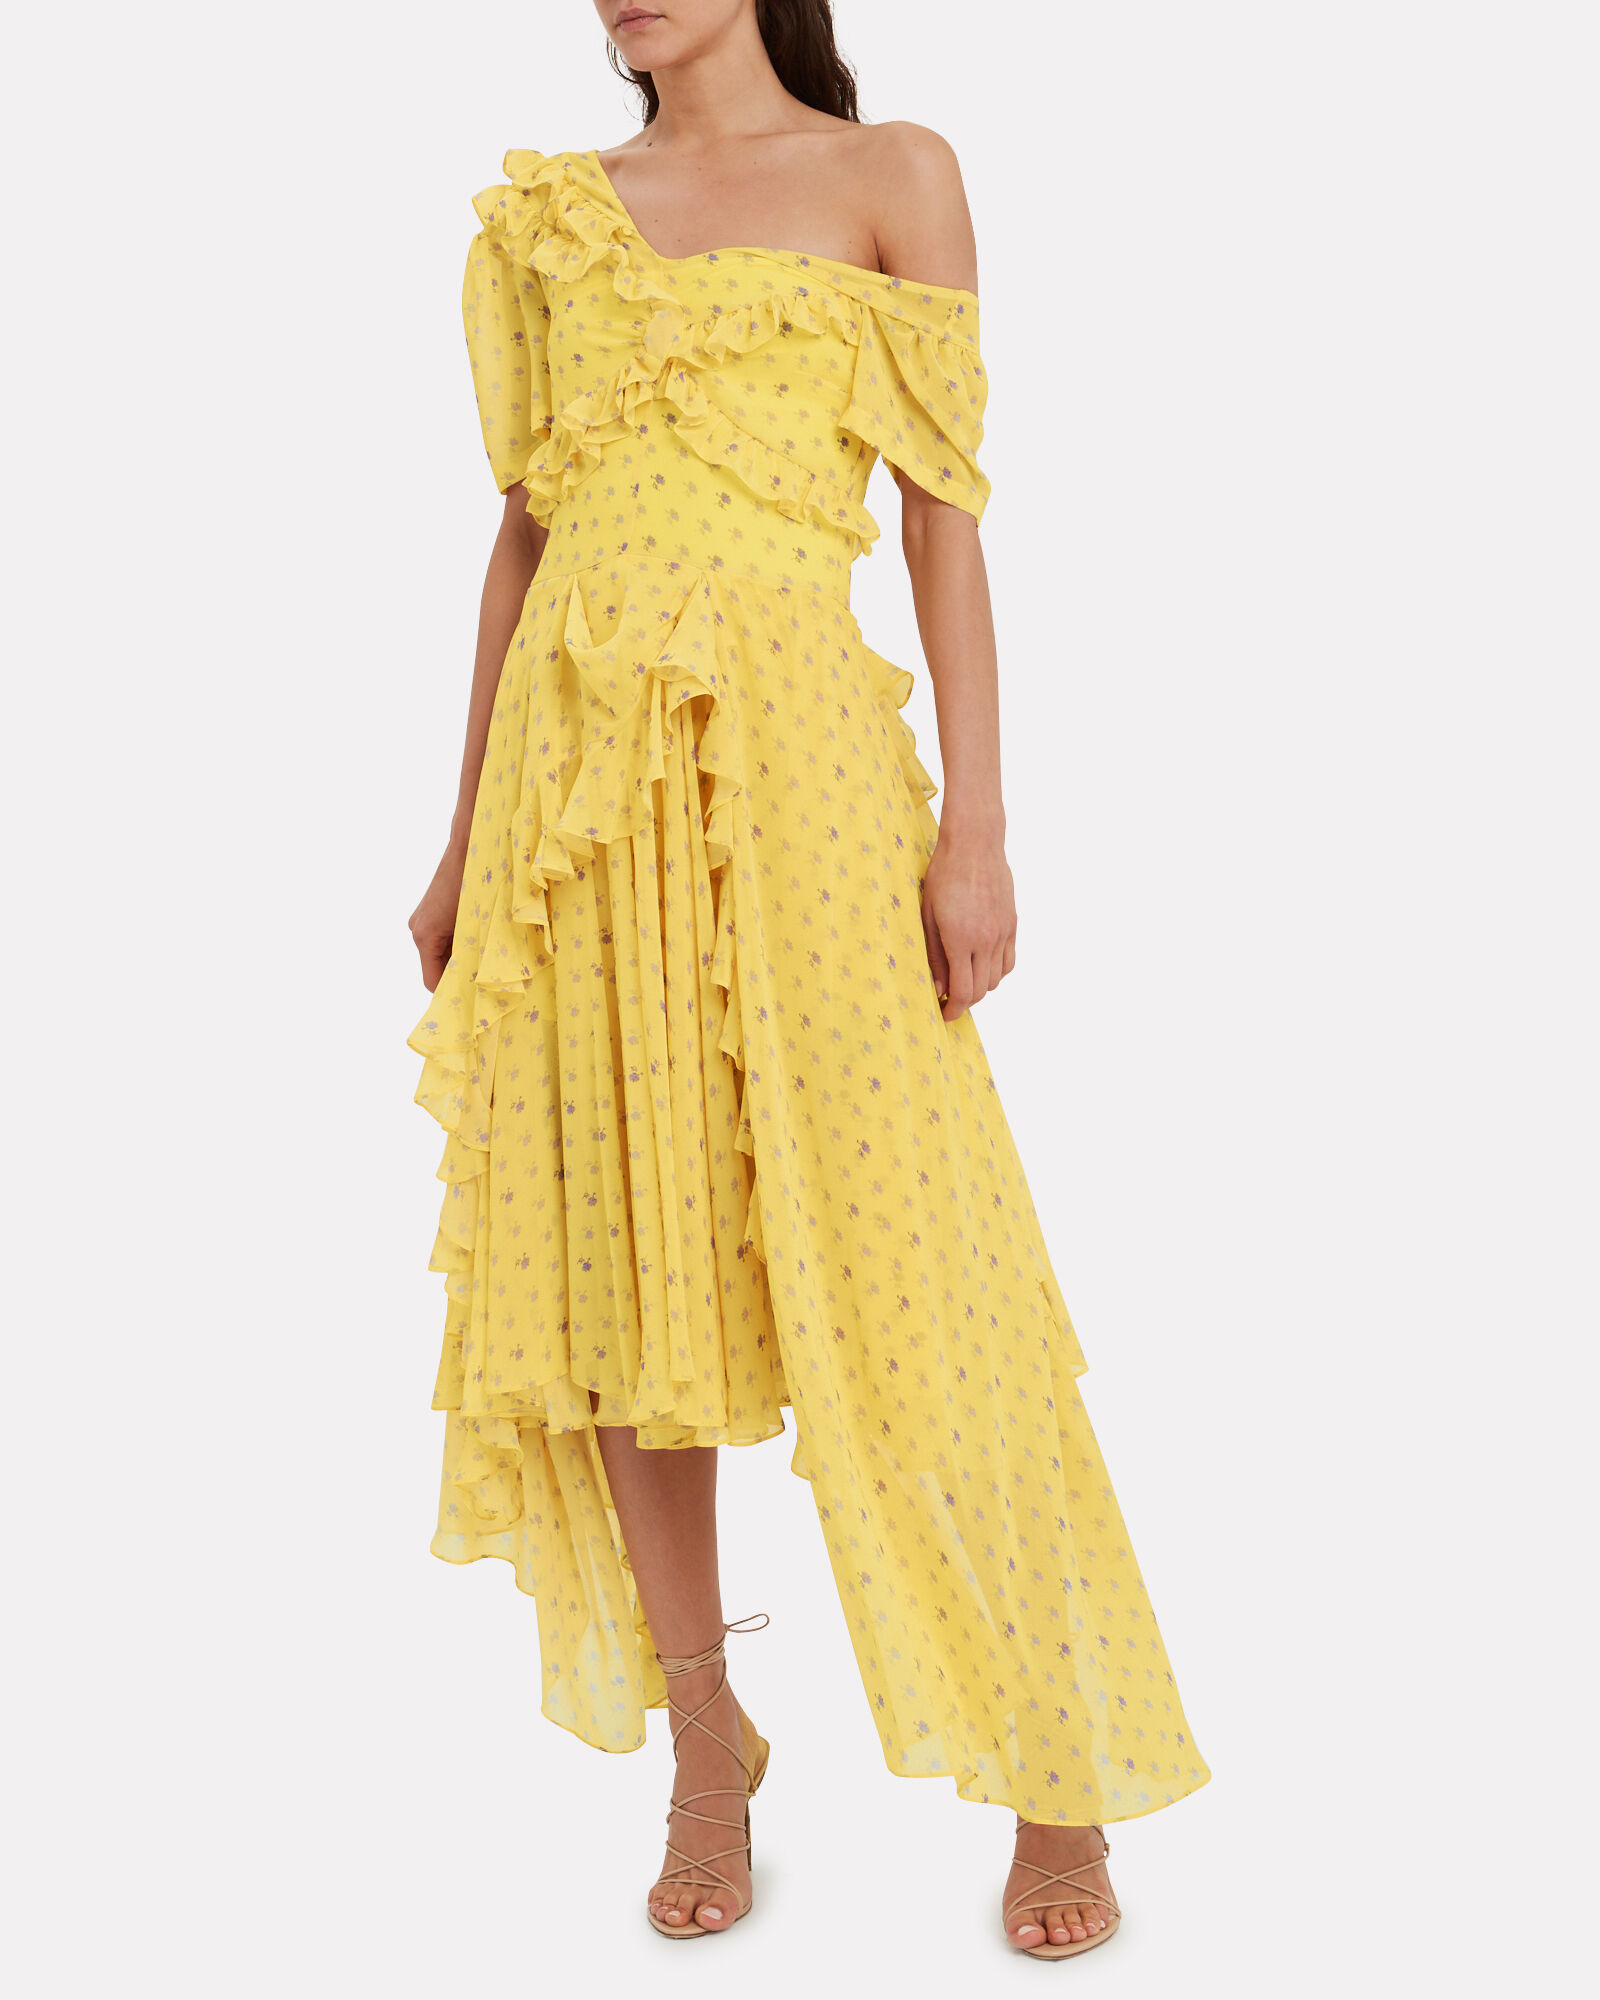 Kennedy Floral Georgette Asymmetric Dress, YELLOW, hi-res